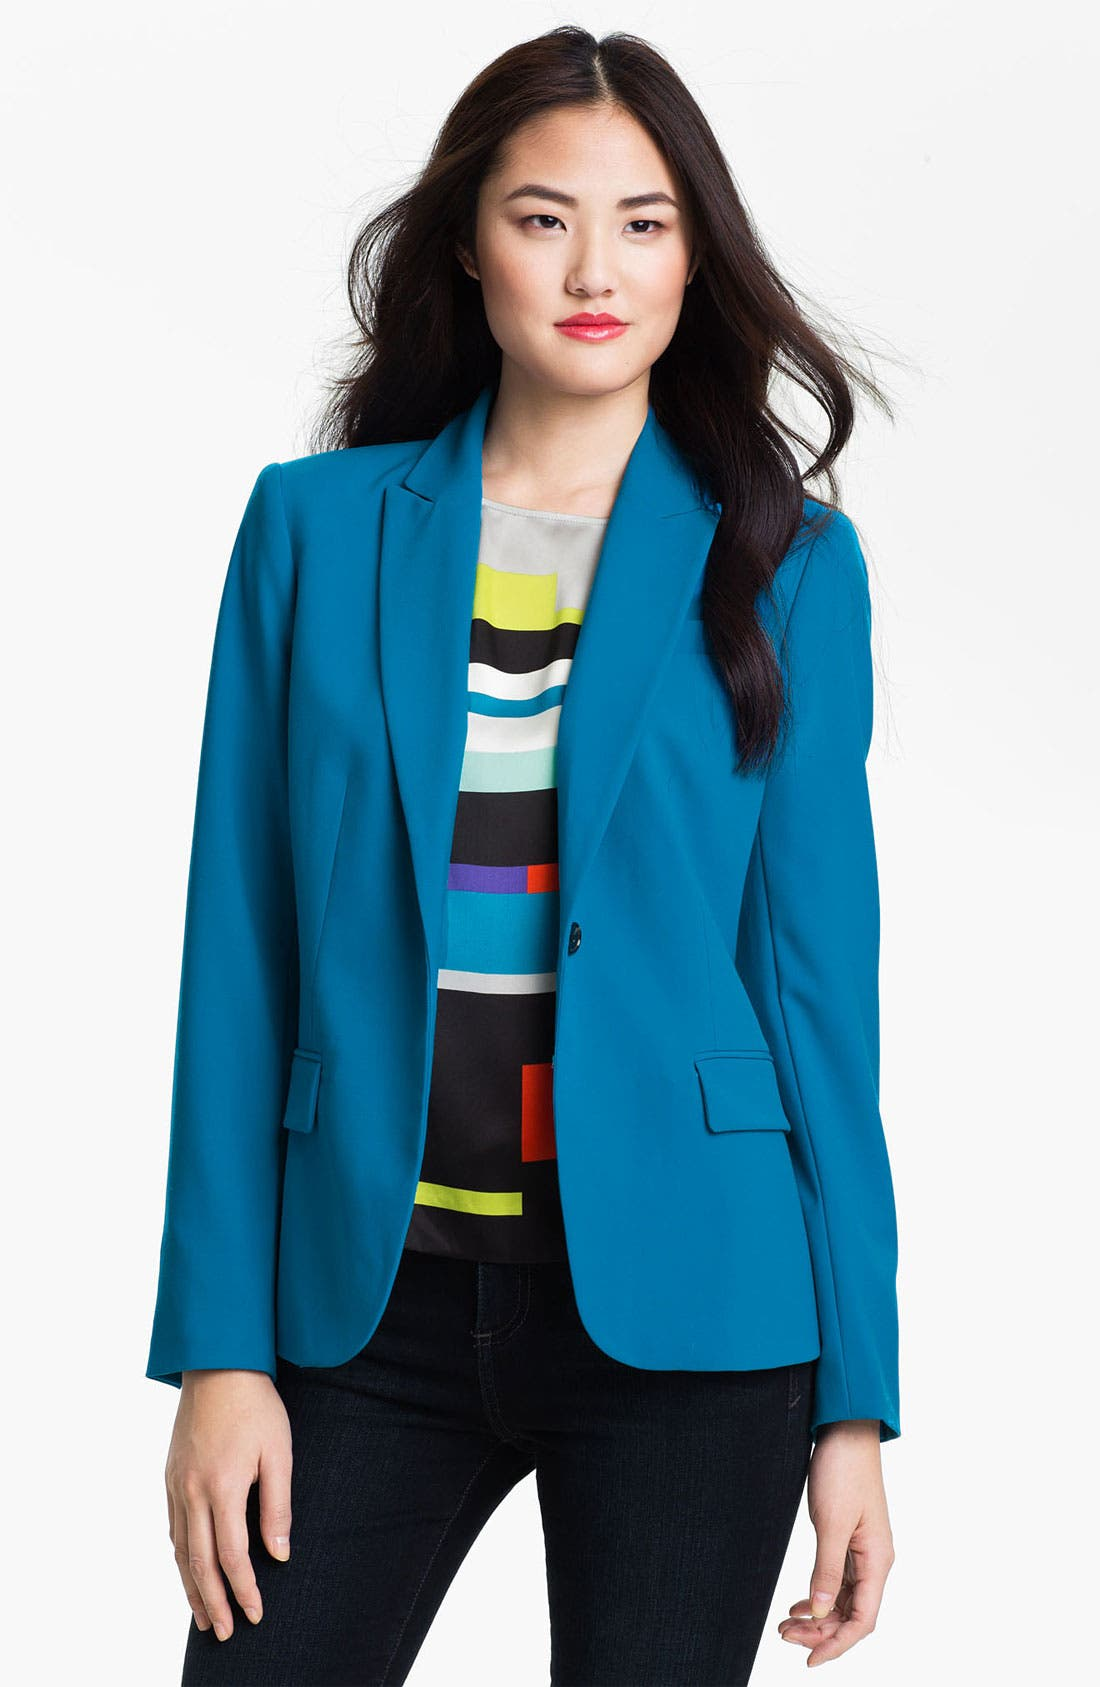 Alternate Image 1 Selected - Vince Camuto 'Scarpa' One Button Jacket